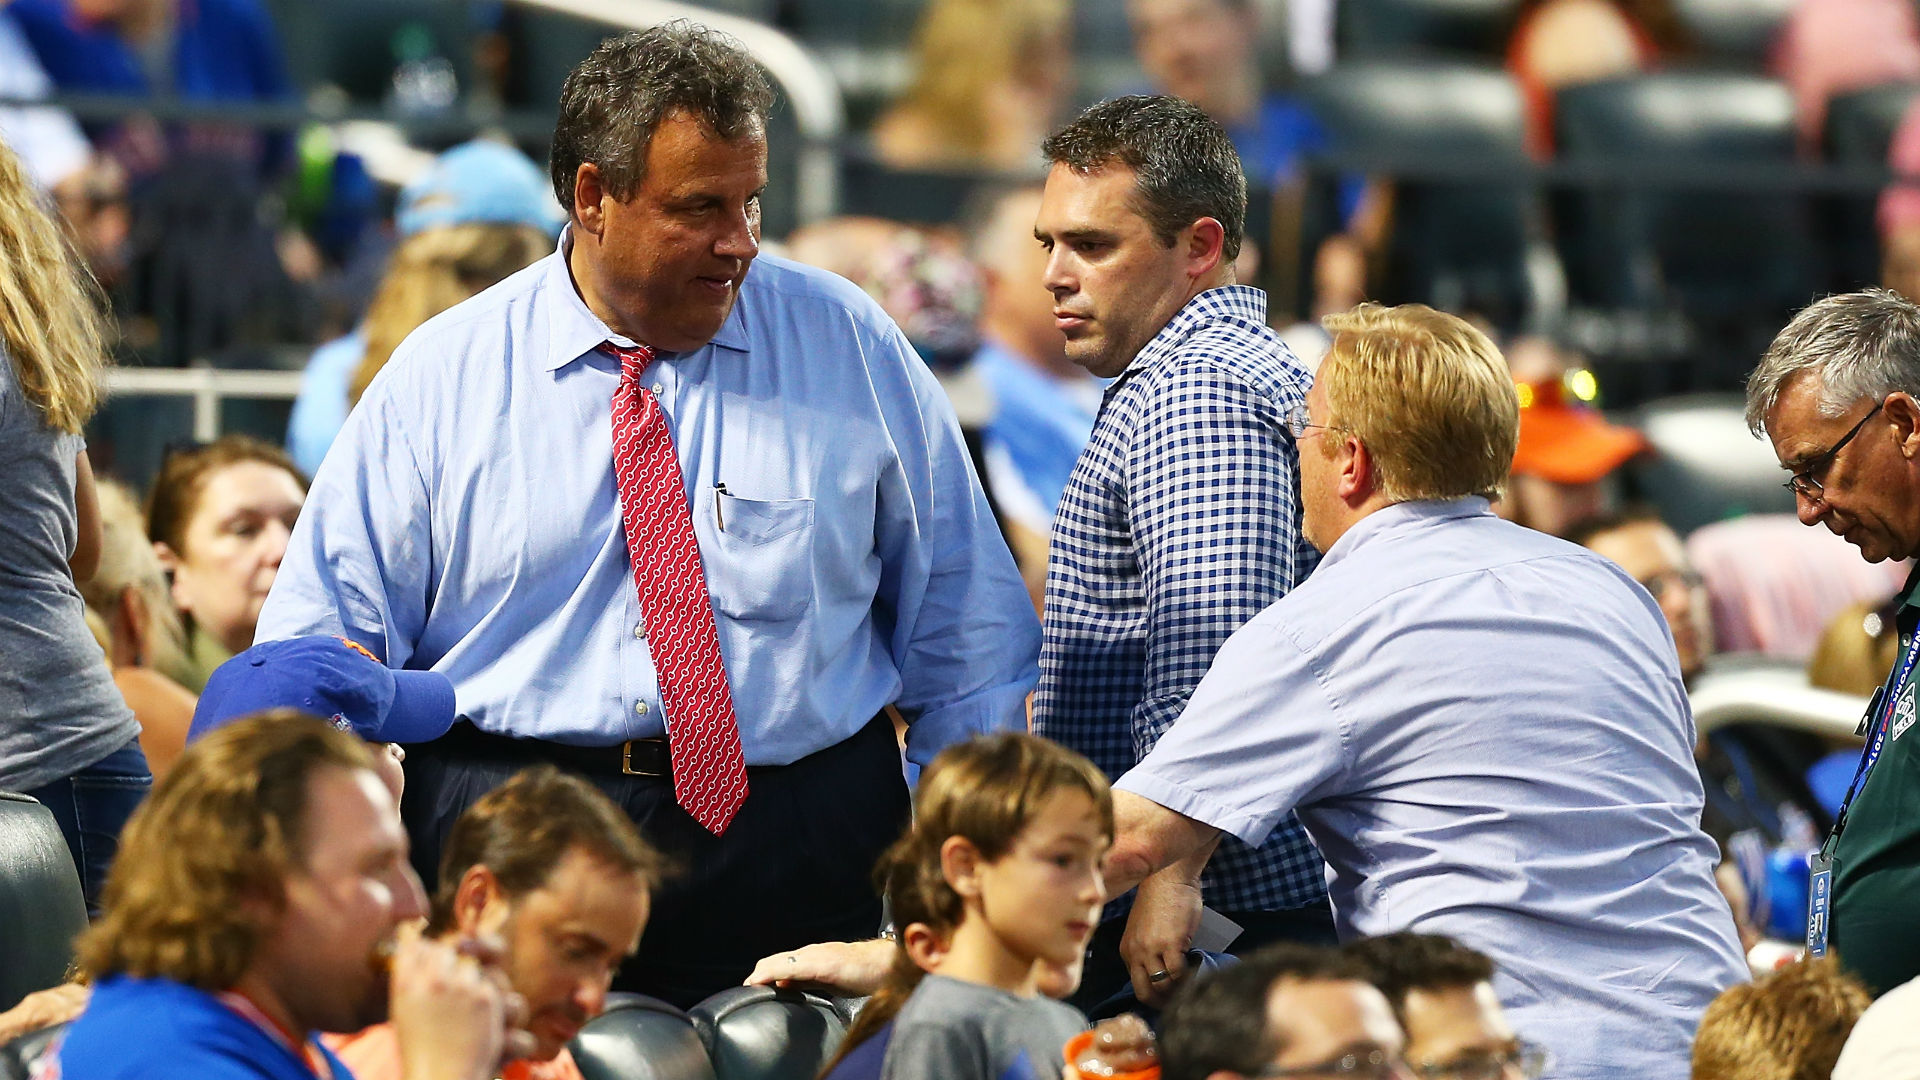 Christie gets in heckler's face at Wisconsin baseball game